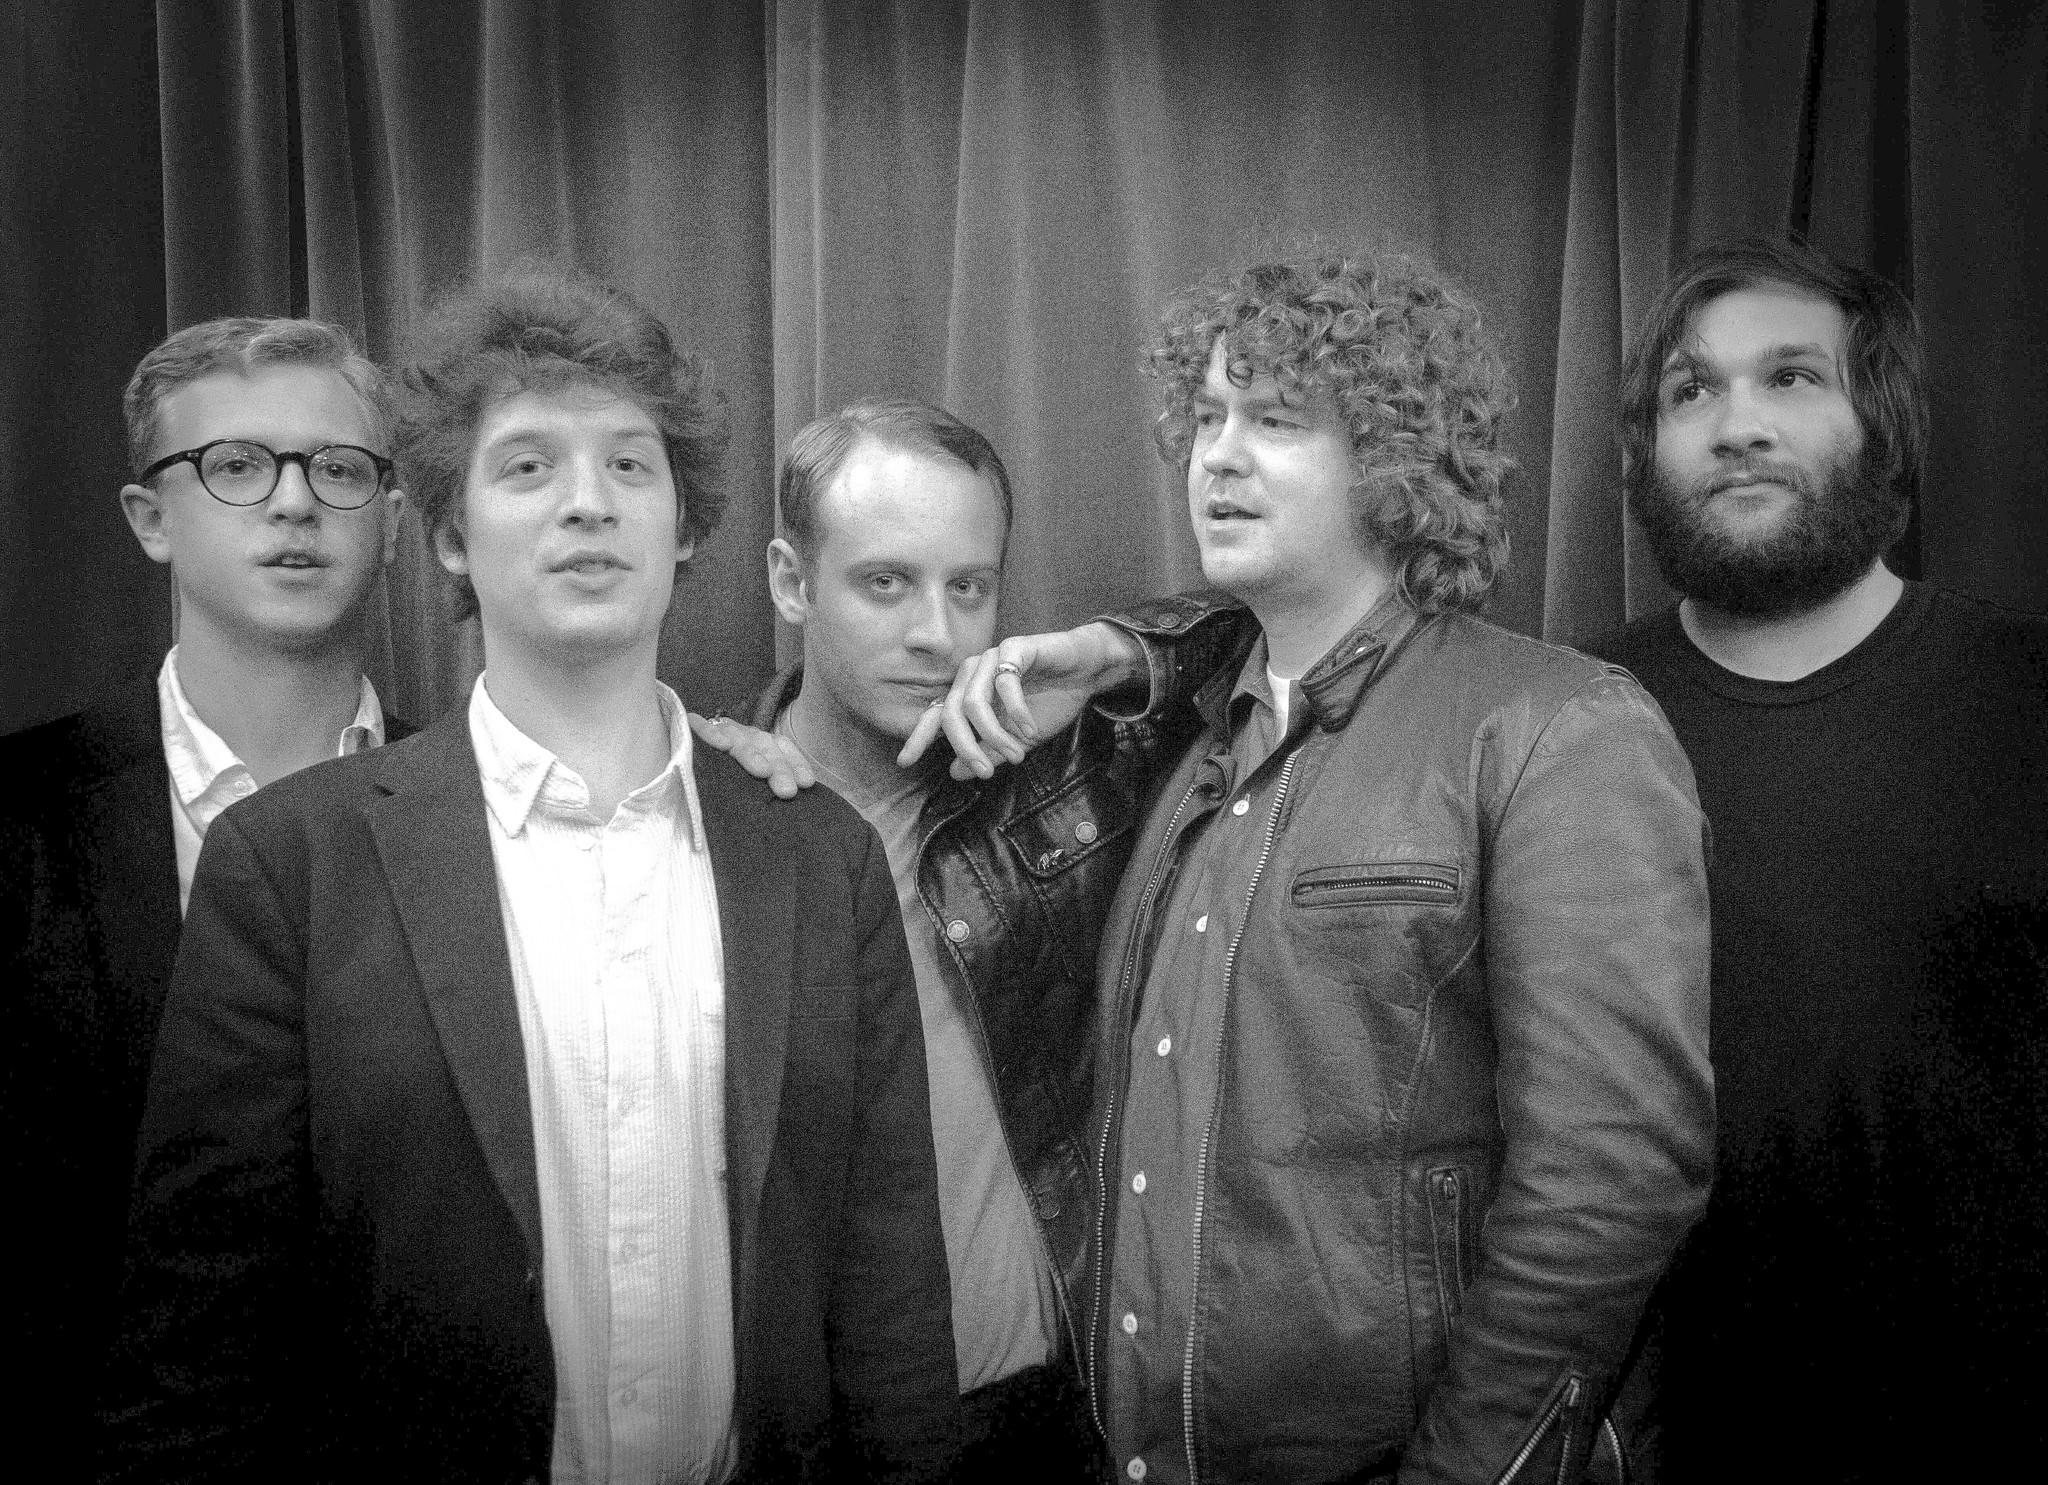 Deer Tick plays Infinity Hall in Norfolk on March 5.